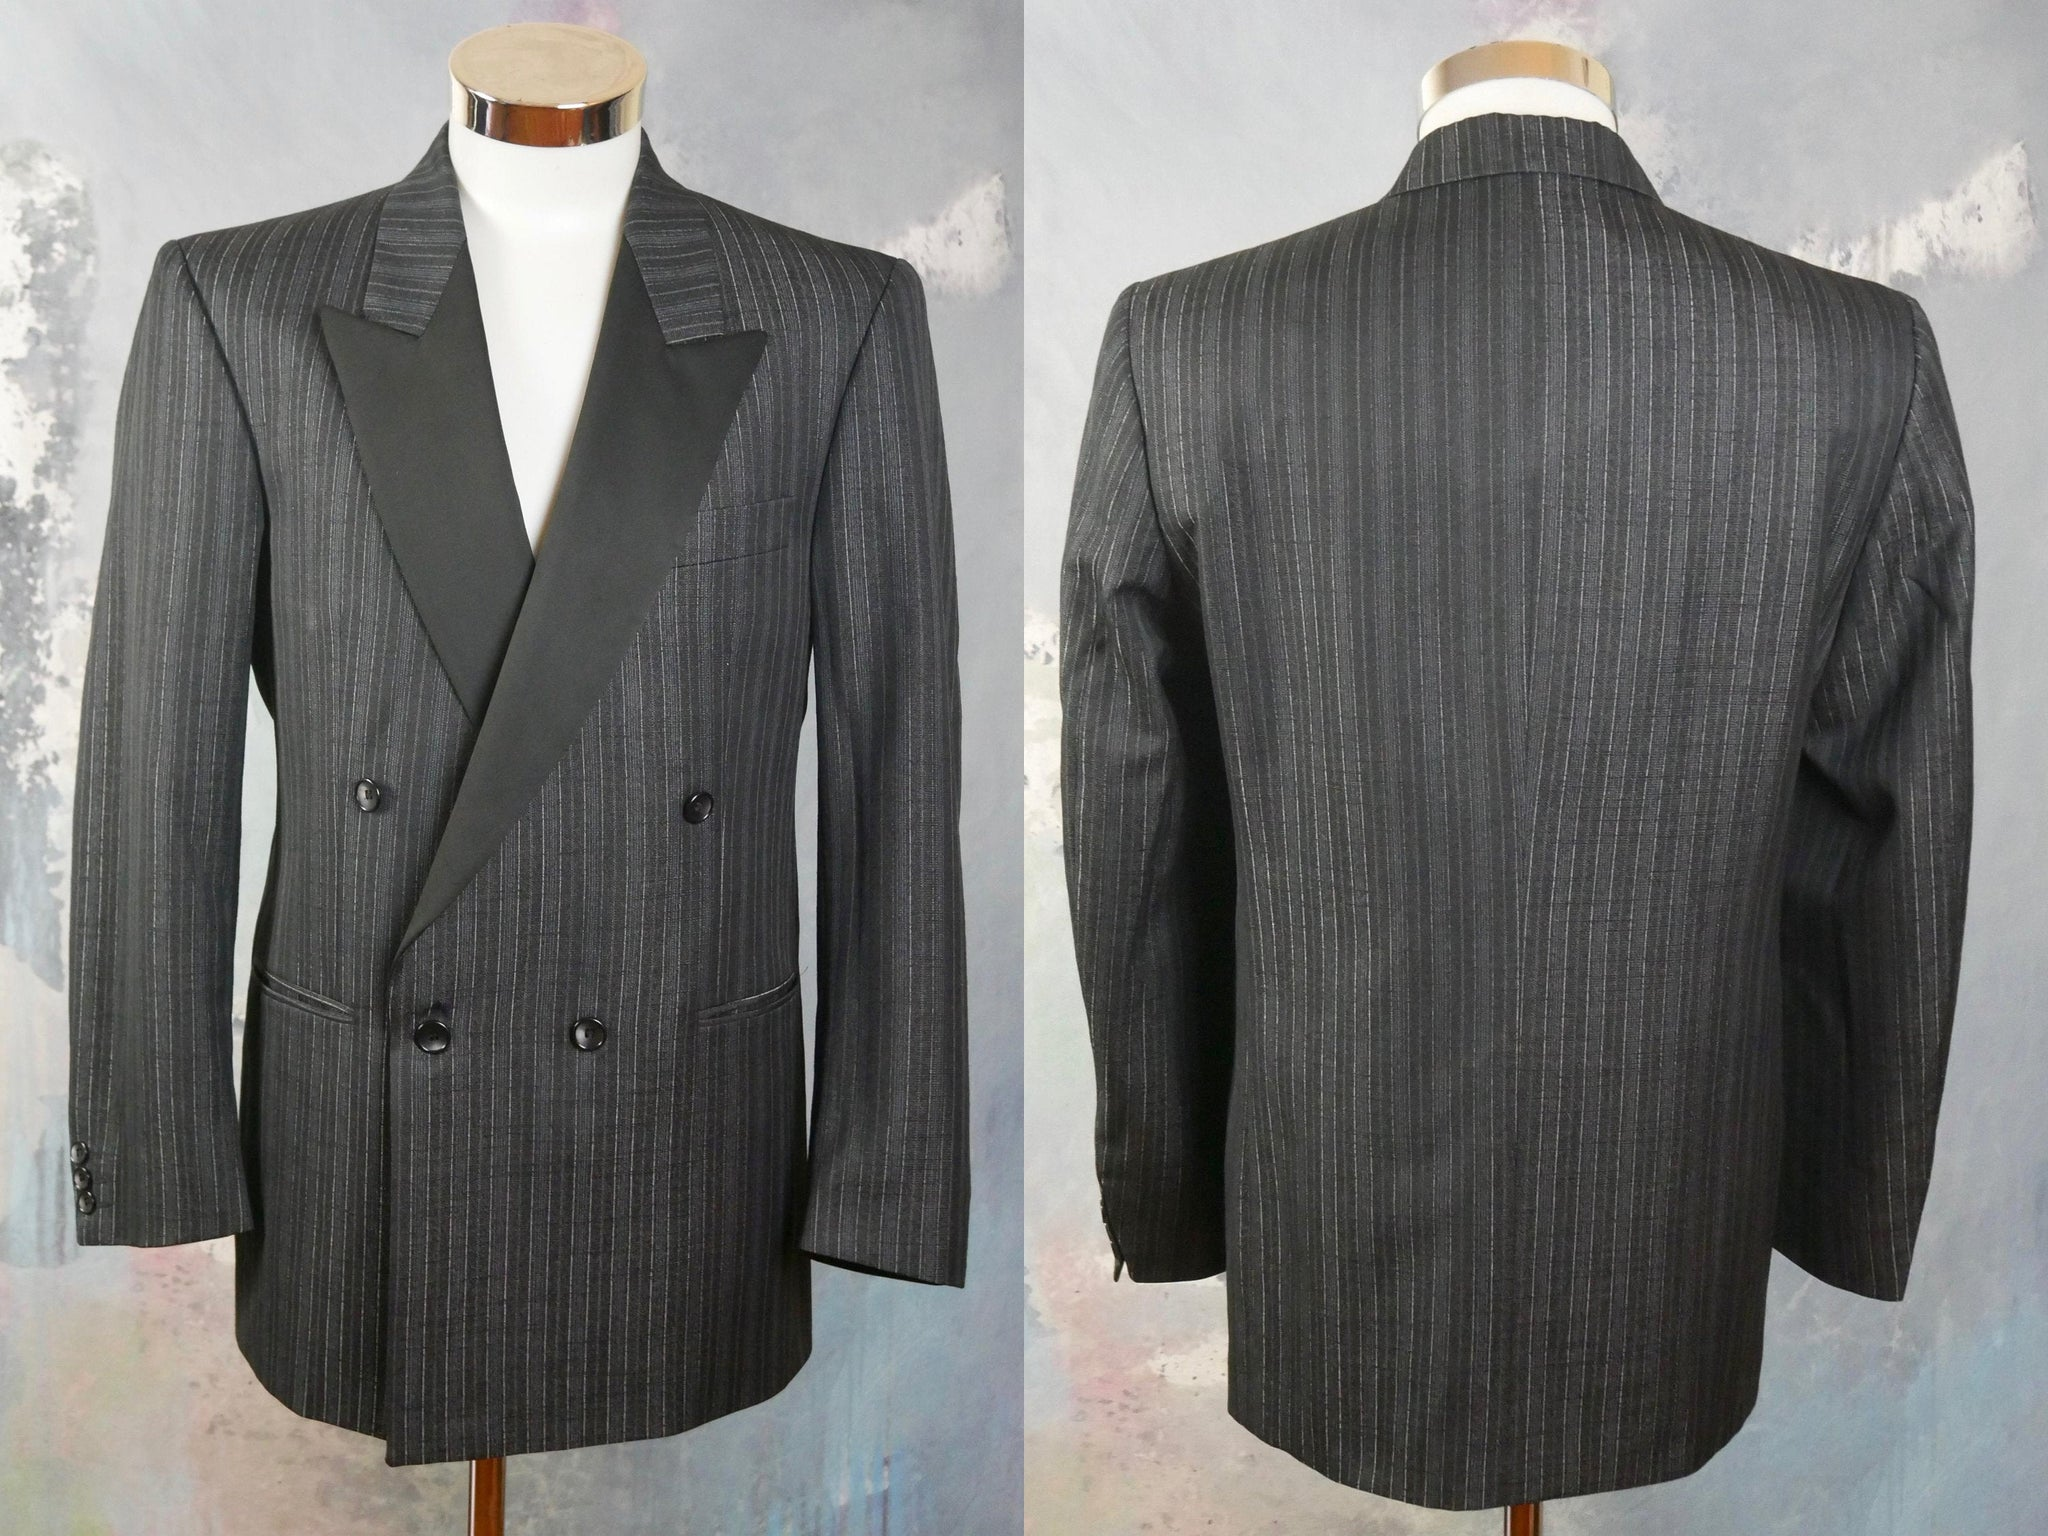 Black & Silver Striped Tuxedo Jacket, 1980s European Vintage Double-Breasted Peak Lapels Smoking Jacket, Made in Switzerland: Size 40 US/UK - DownShifting Vintage Menswear